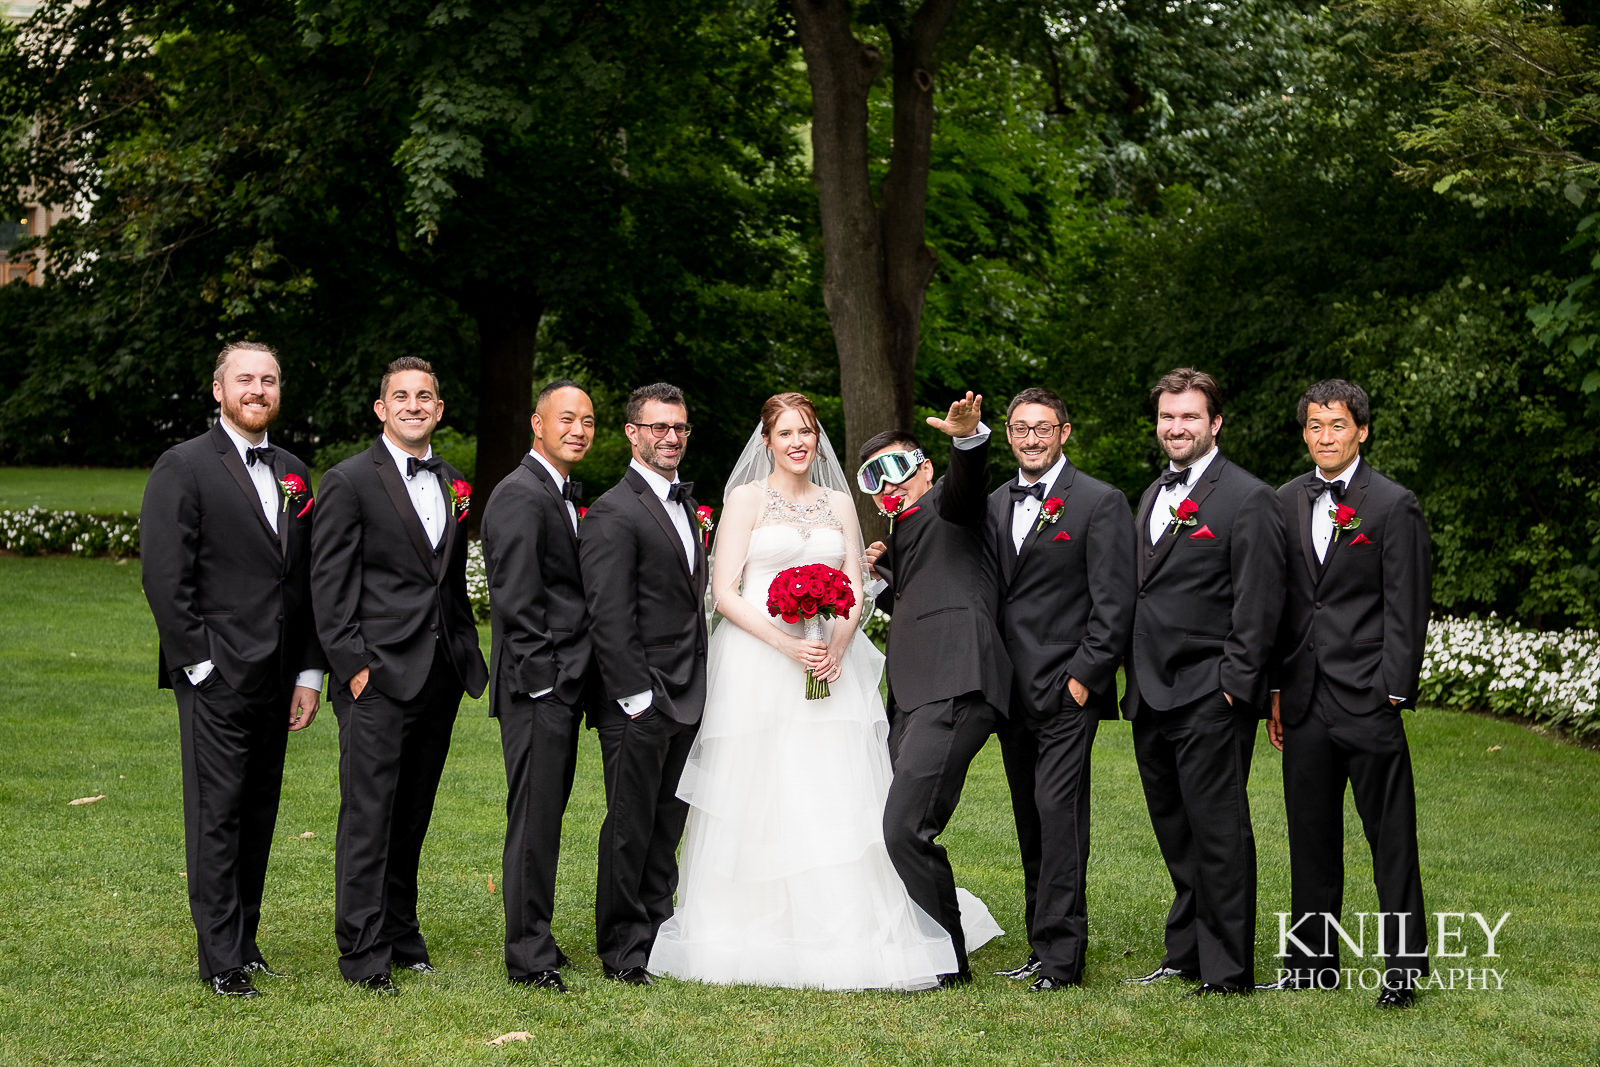 089 - Rochester NY wedding pictures - Genesee Valley Club - Ceremony and Reception - XT2A5771.jpg